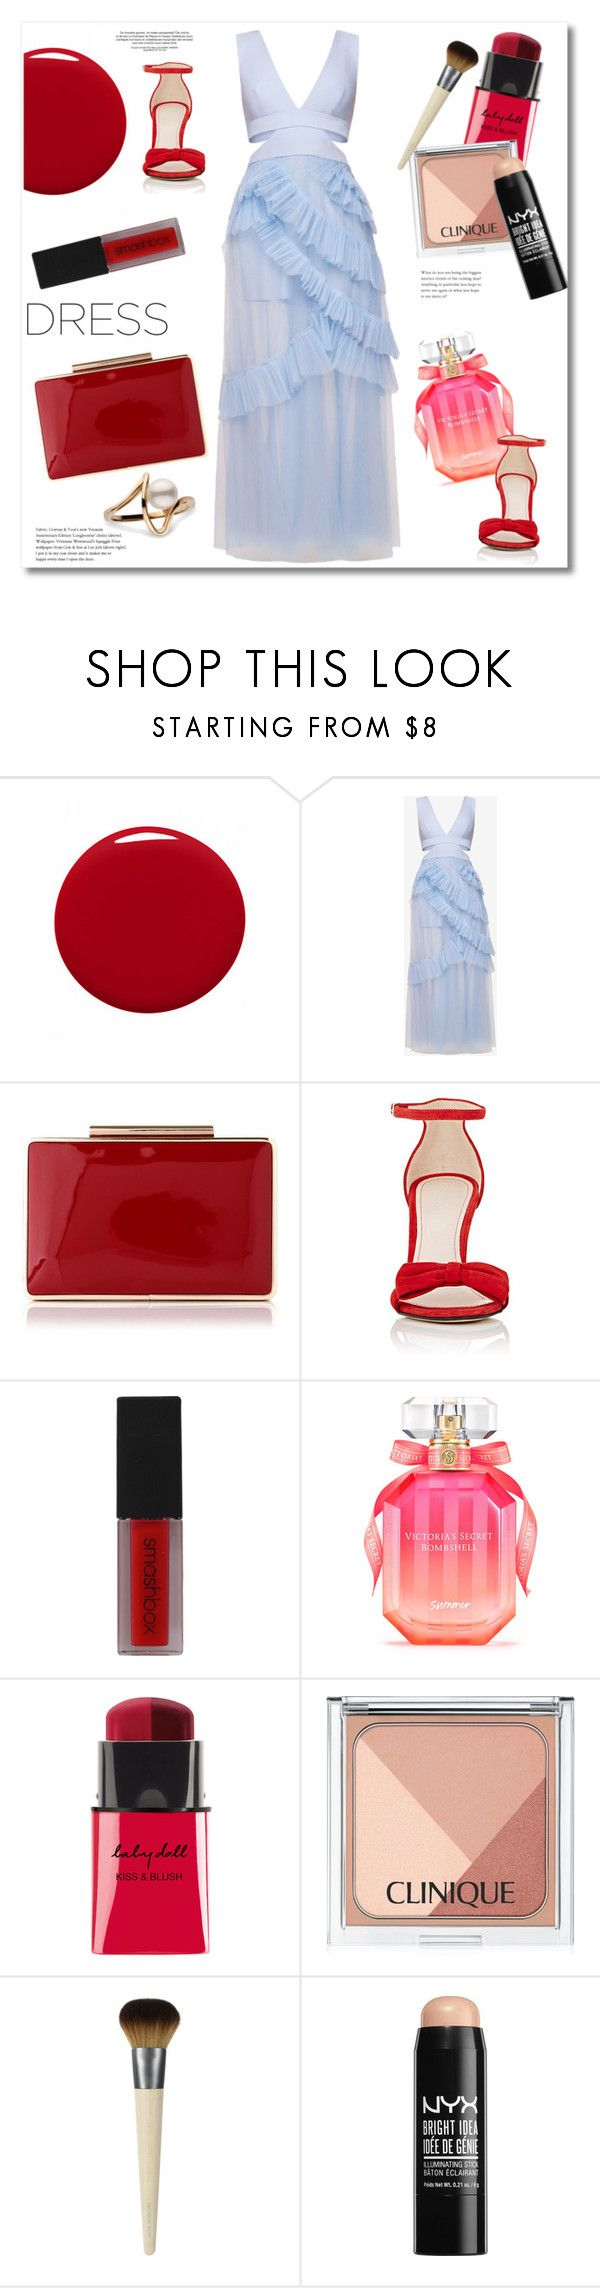 """""""Get the look"""" by vkmd ❤ liked on Polyvore featuring Givenchy, BCBGMAXAZRIA, L.K.Bennett, Barneys New York, Smashbox, Victoria's Secret, Clinique, NYX and dreamydresses"""